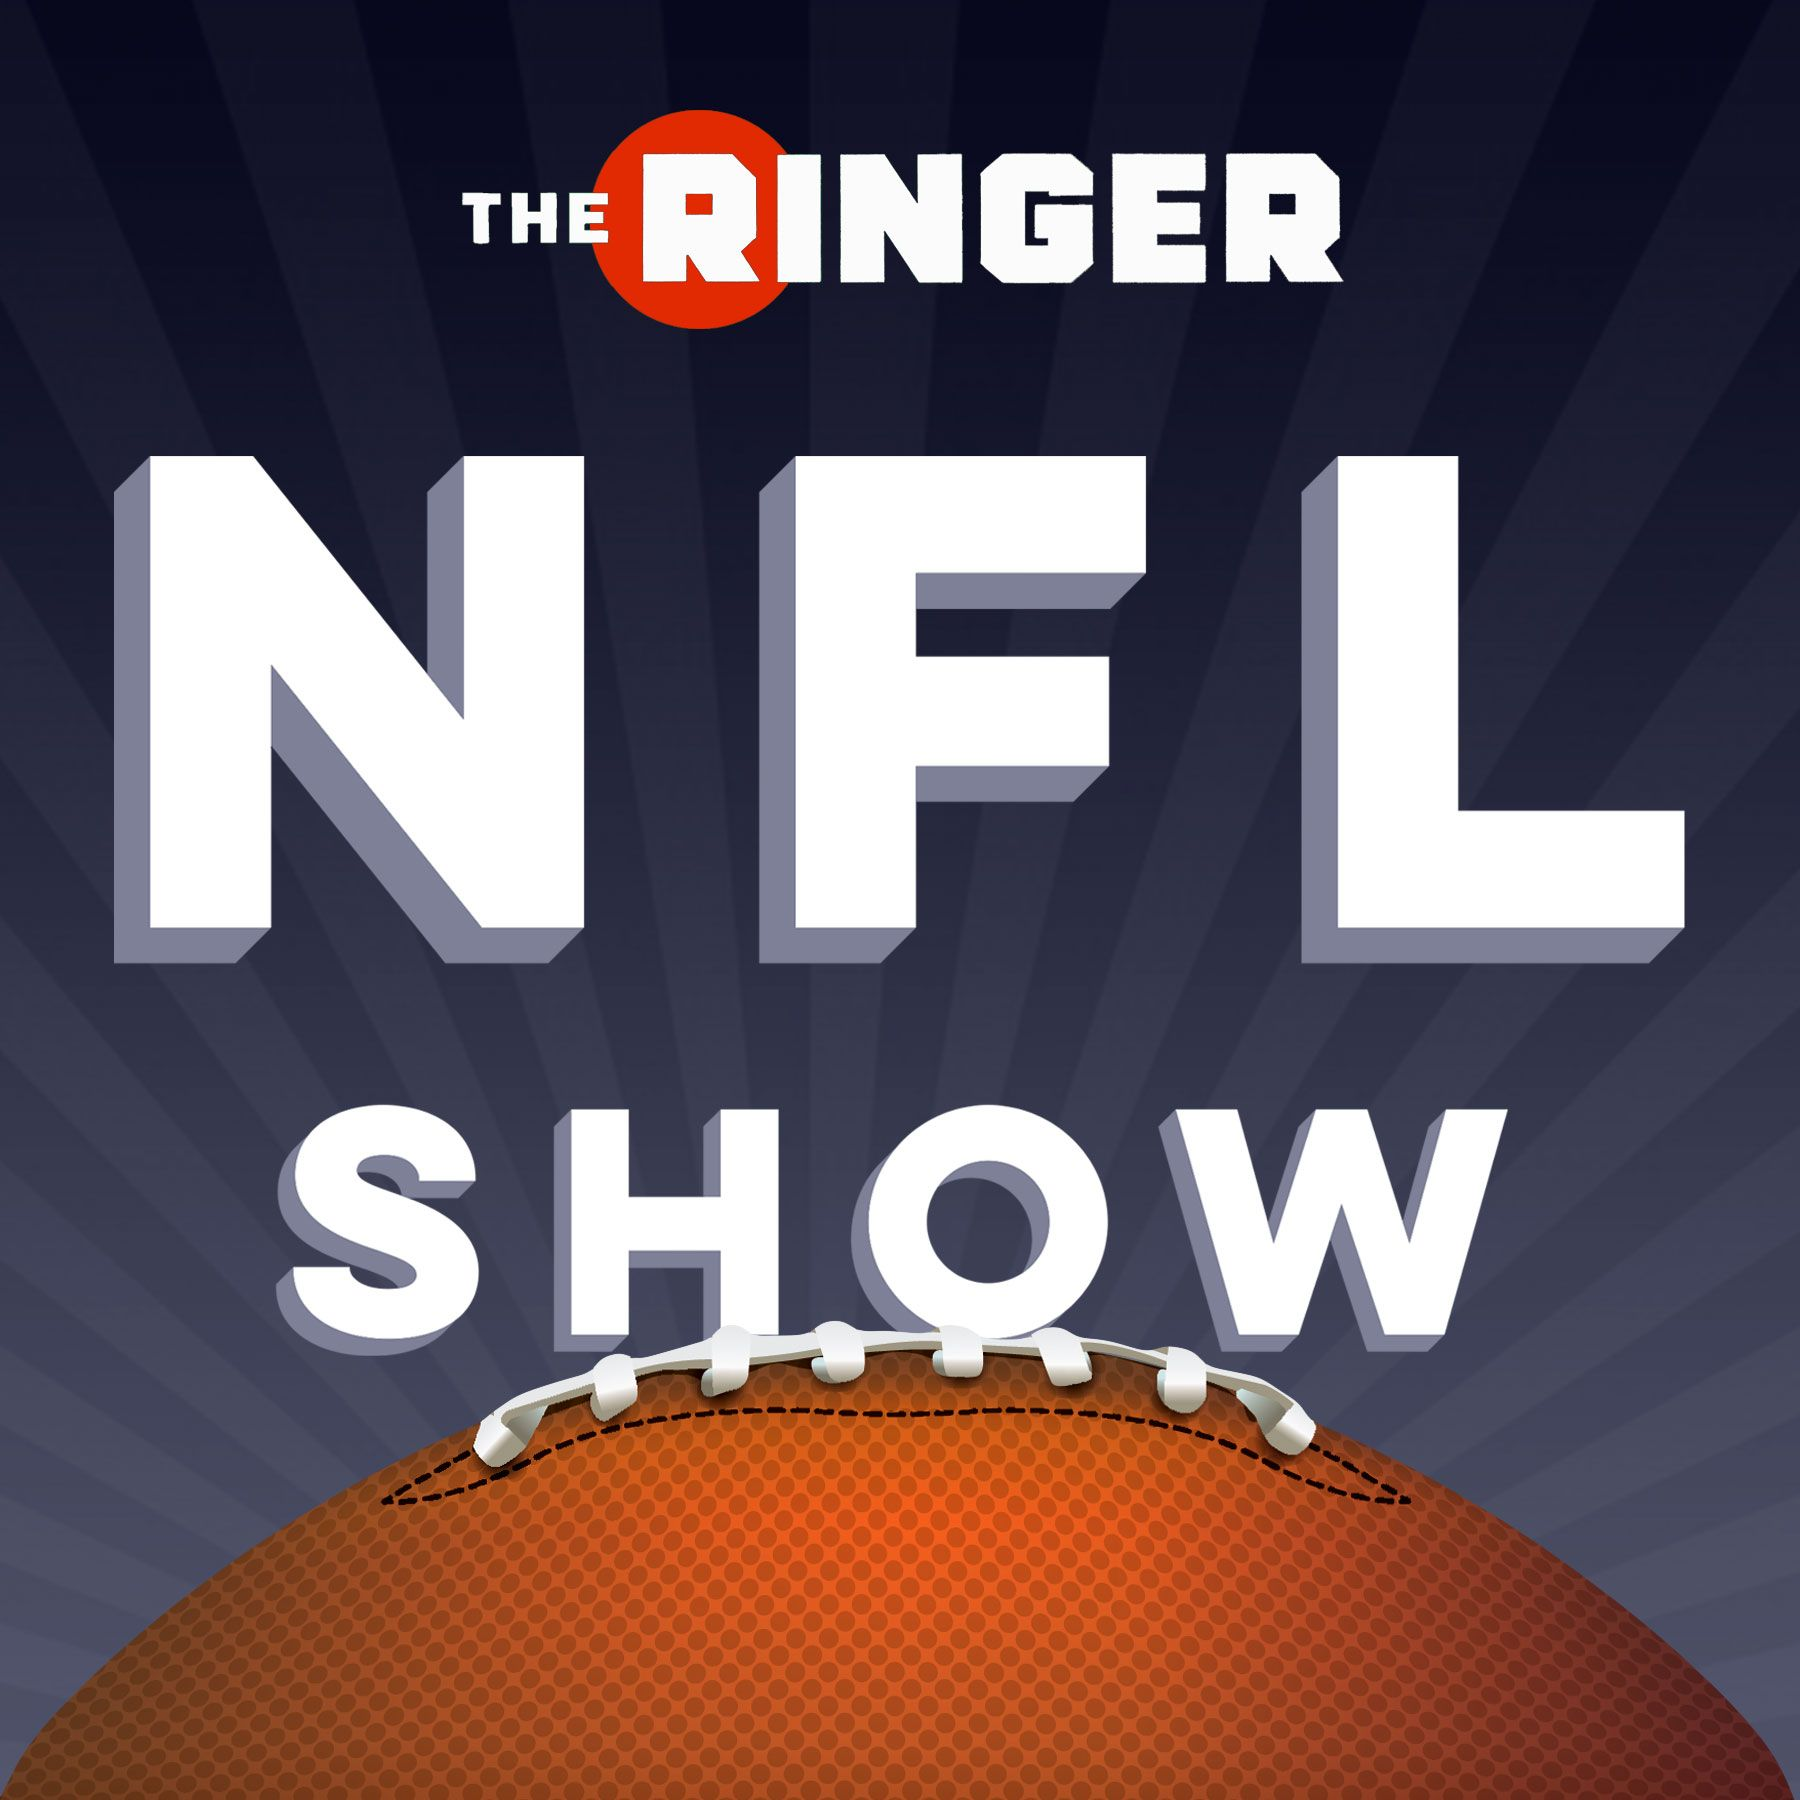 Advice for Saquon, Outlook for the Steelers, and Week 2 Likes | The Ringer NFL Show